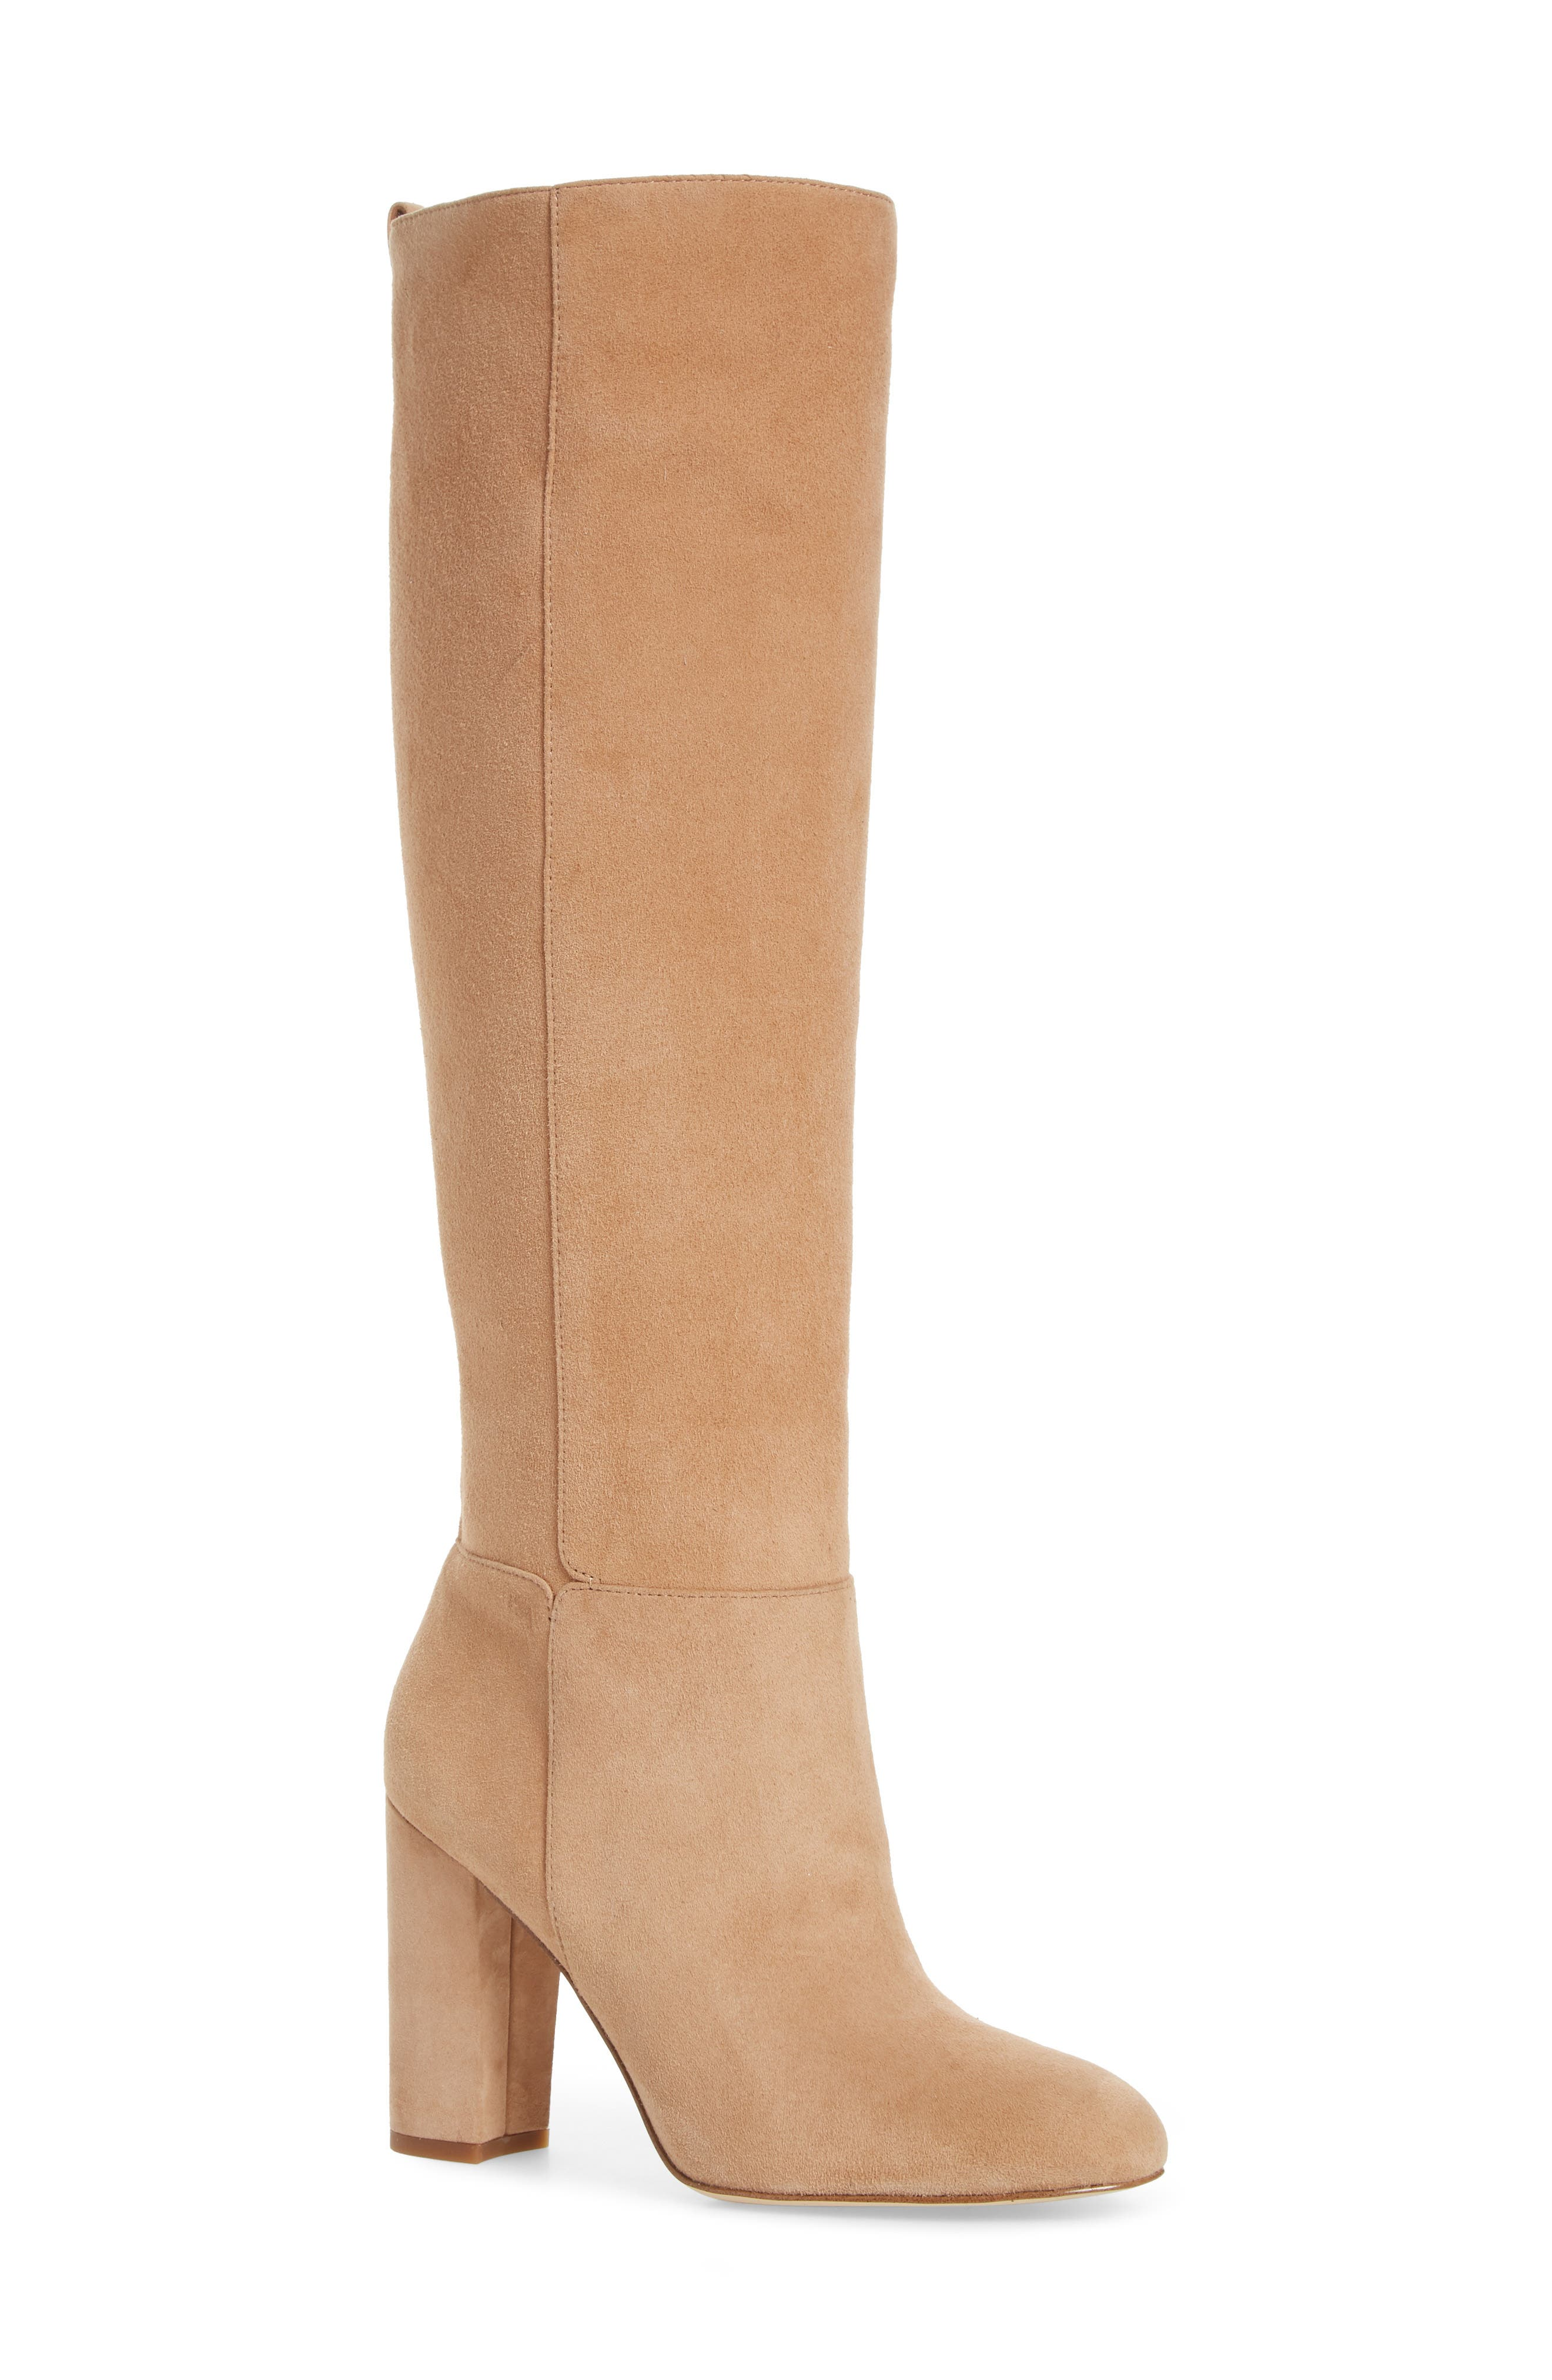 Caprice Knee-High Boot, Main, color, 250